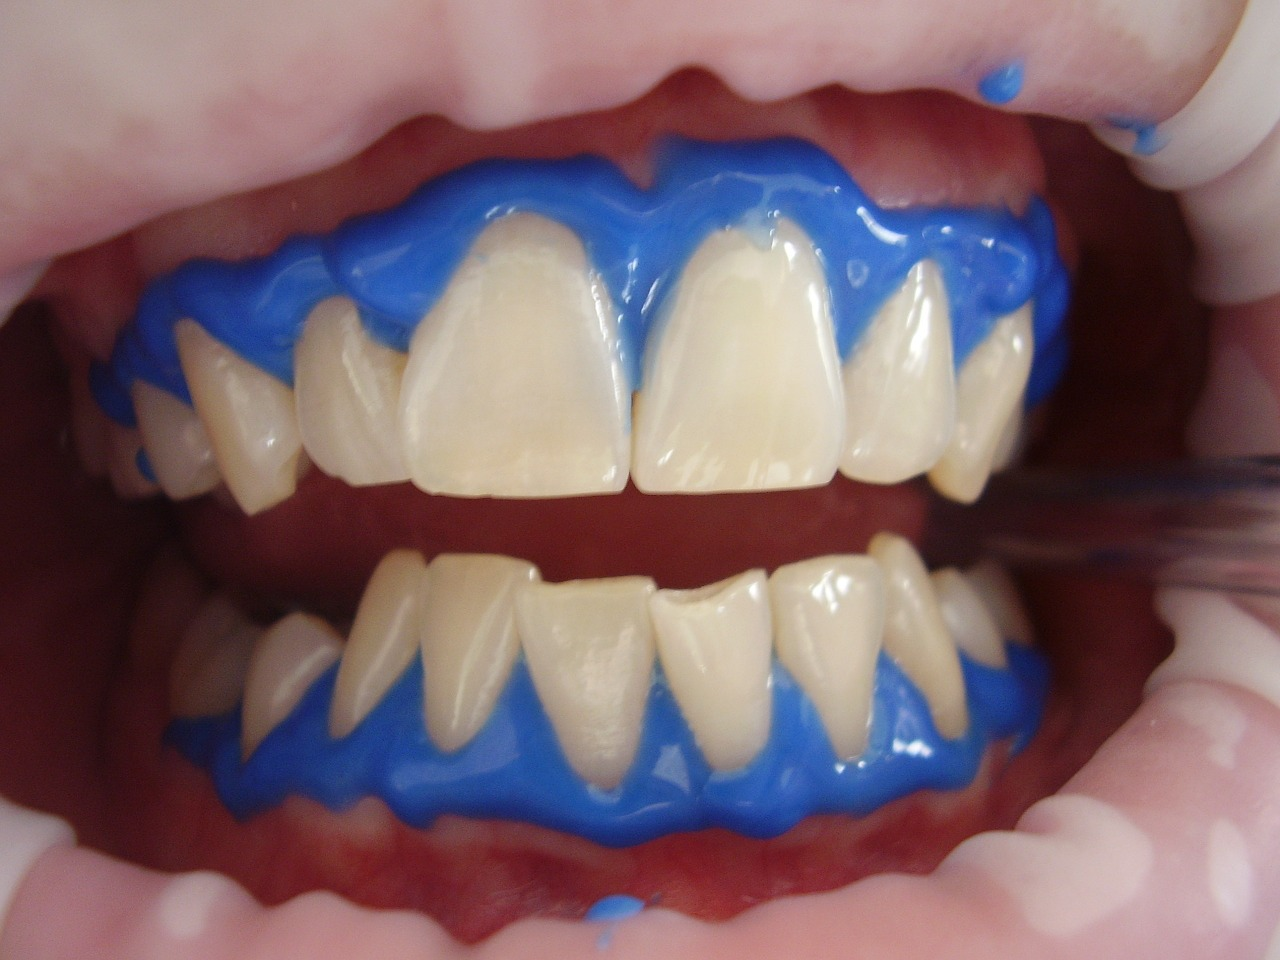 laser-teeth-whitening-716468_1280